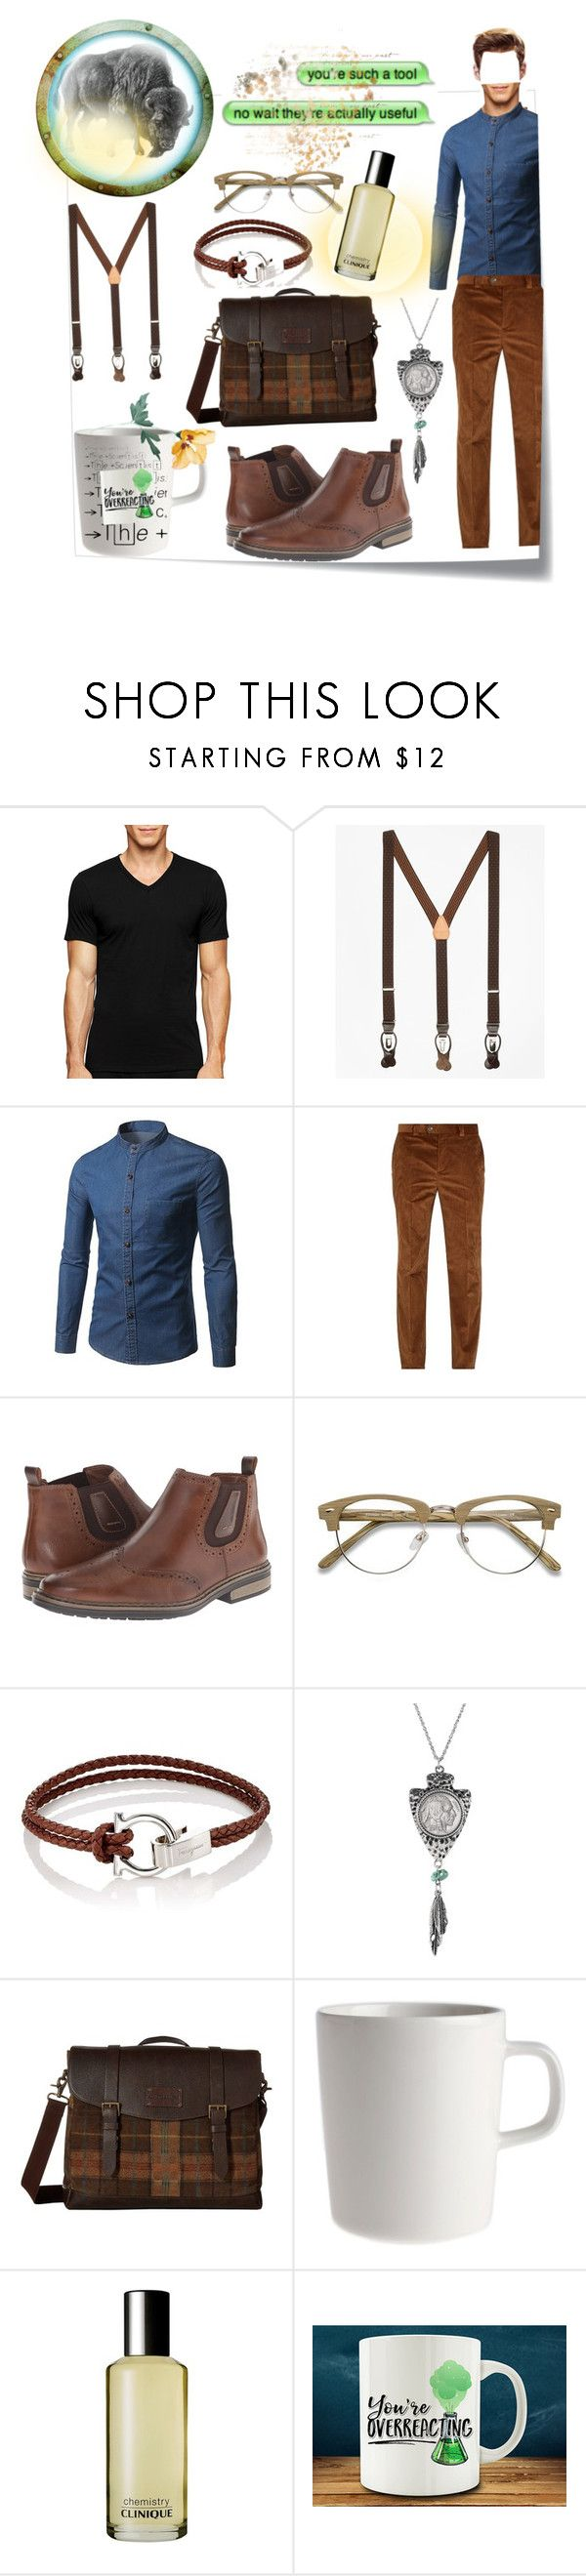 """""""chemistry Chem"""" by camilledifraccelinew ❤ liked on Polyvore featuring Post-It, Calvin Klein, Brooks Brothers, Brunello Cucinelli, Rieker, EyeBuyDirect.com, Salvatore Ferragamo, American Coin Treasures, Johnston & Murphy and Clinique"""